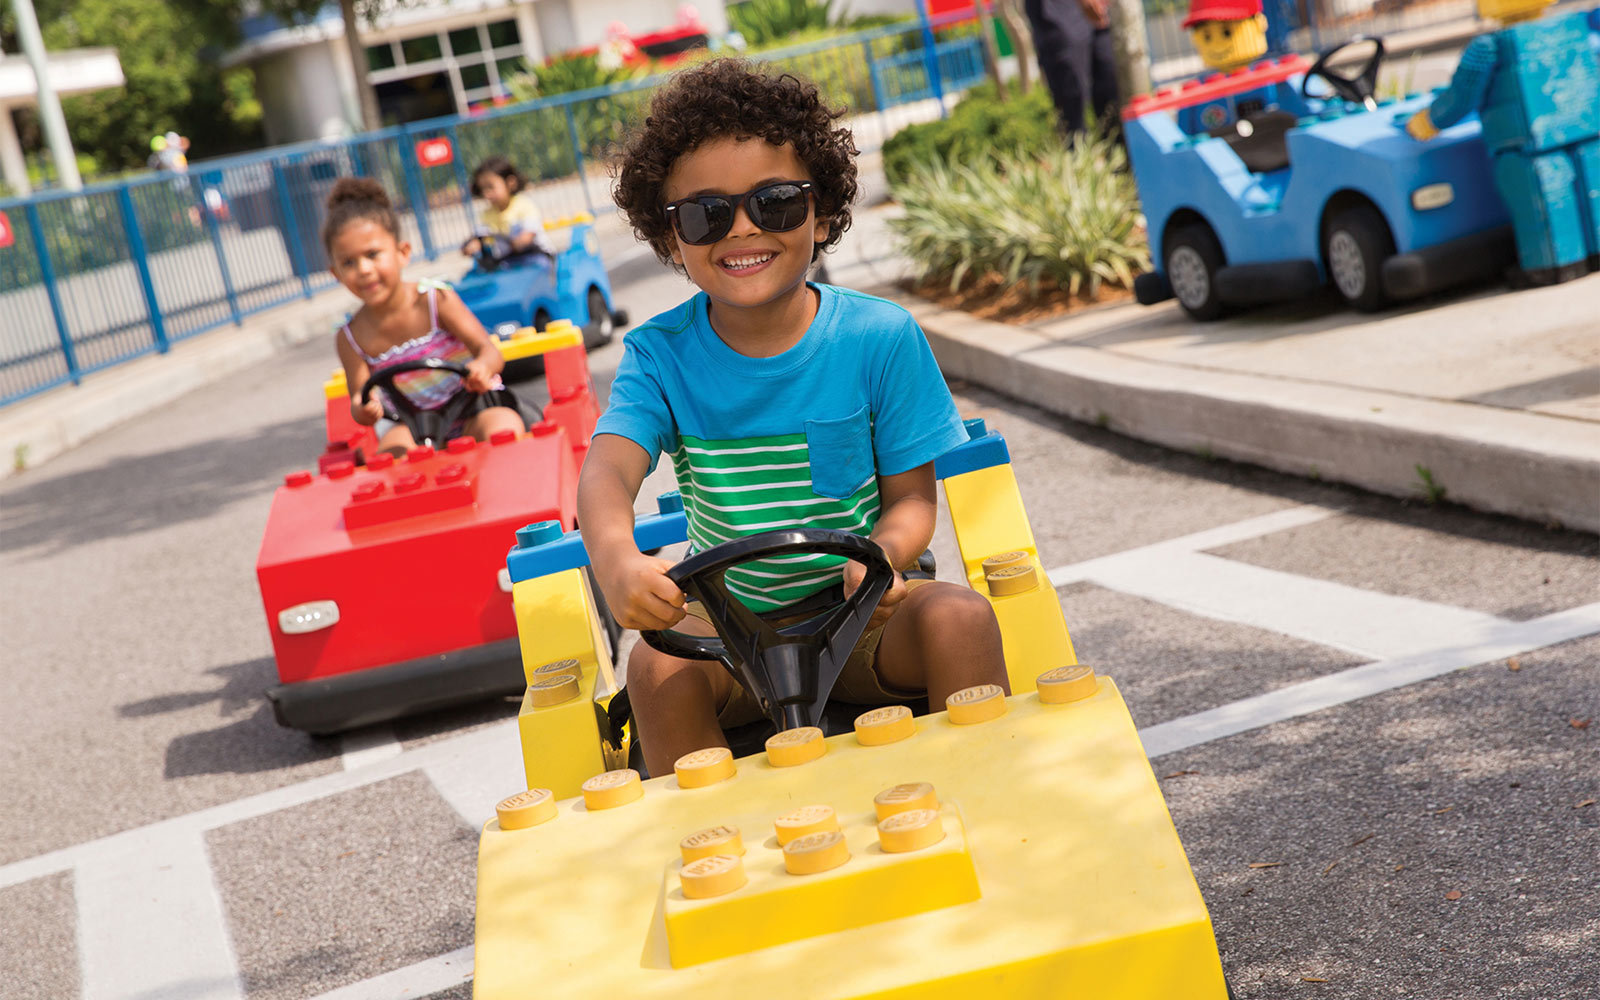 Driving, Legoland, California